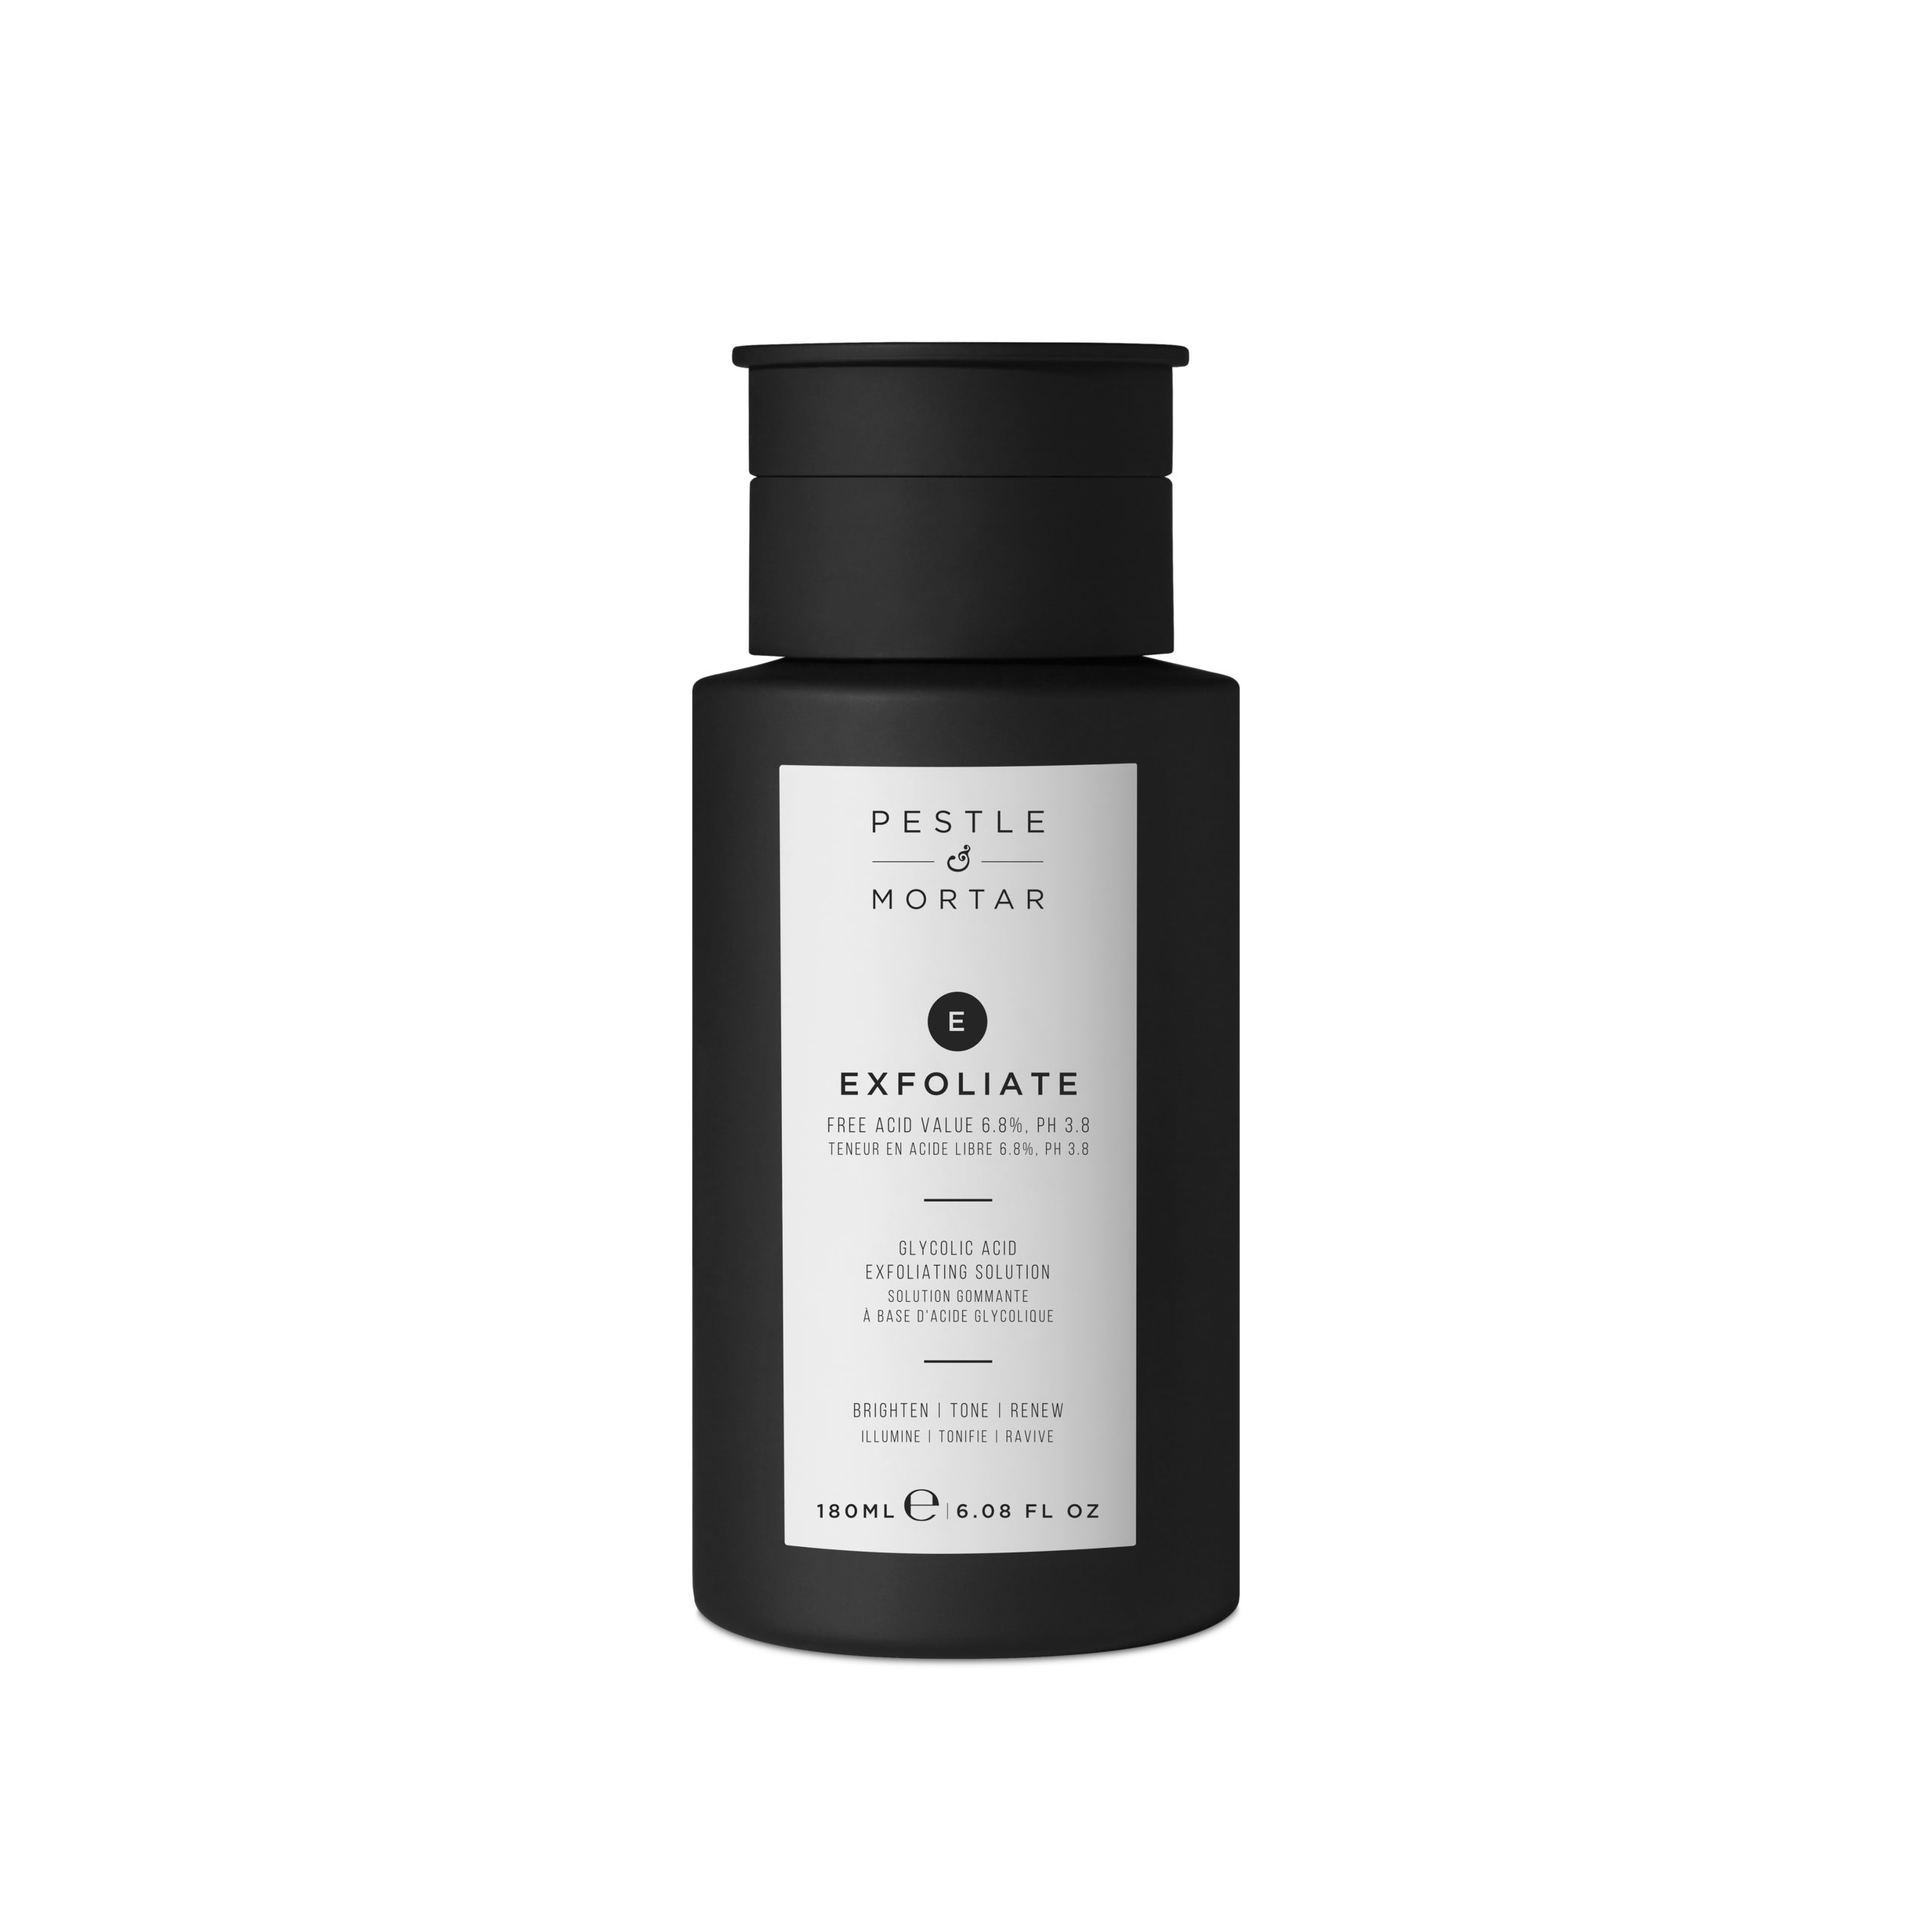 Pestle and Mortar Exfoliate Gylcolic Acid Toner 180ml